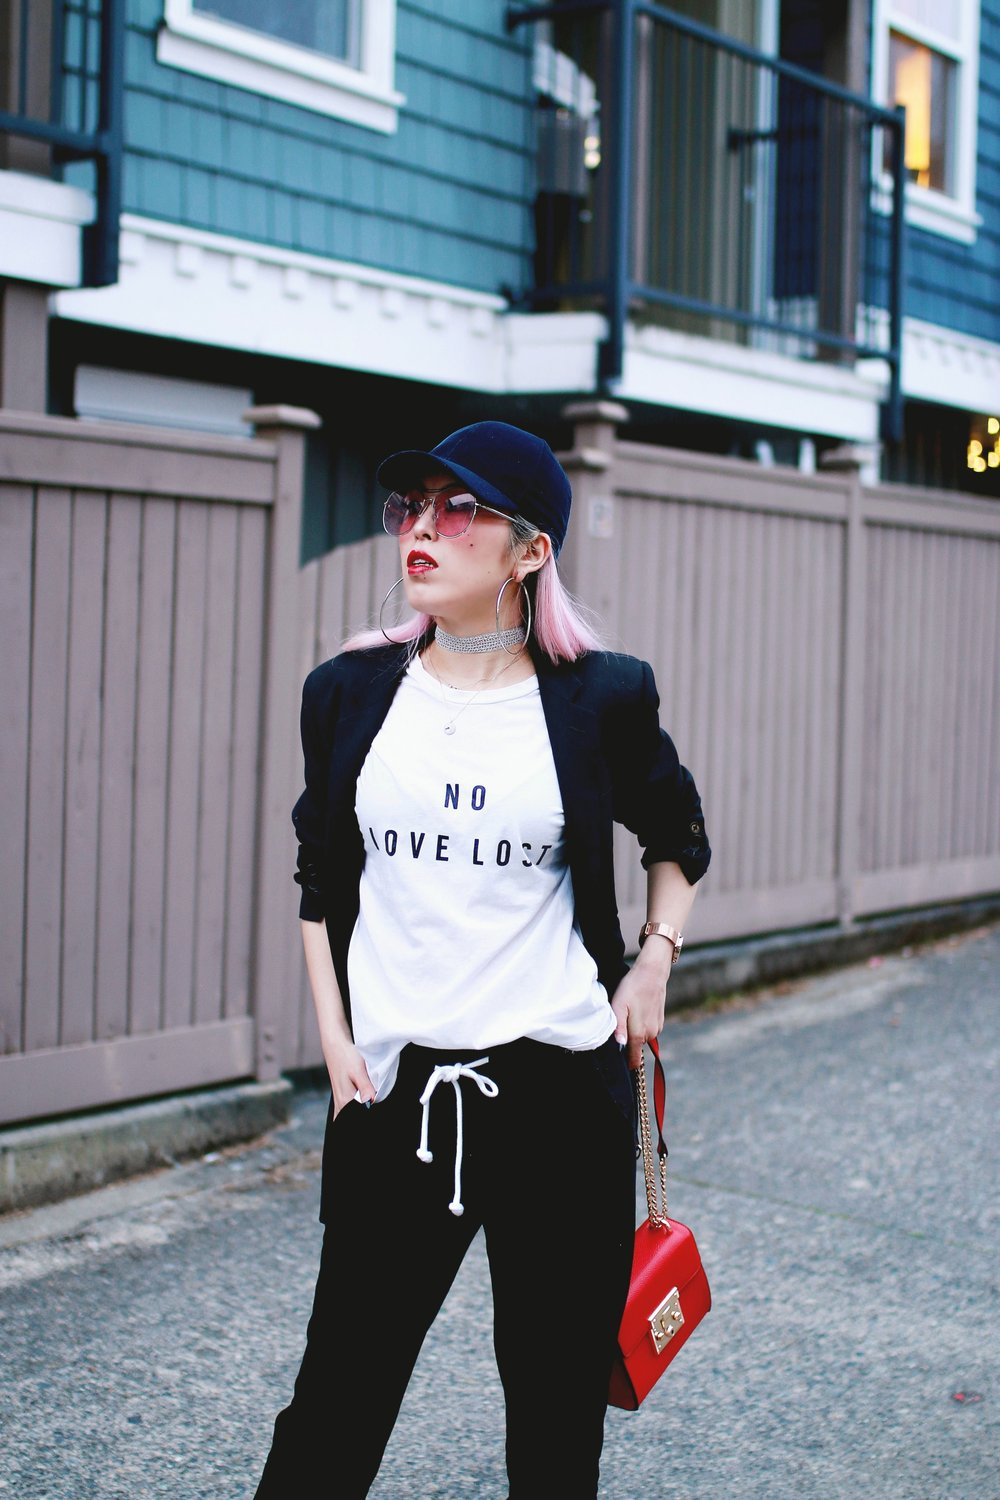 H&M Baseball Cap_Shop Sincerely Jules No LOVE LOST Tee_H&M Sweatpants_YSL Boyfriend Blazer_Zara Choker_Forever 21 Hoop Earrings_Mellow World Red Bag_Charlotte Russe Nude Sandals_L'Oreal Red Lipstick_Aikas Love Closet_Seattle Fashion Style Blogger_Pink Hair 6